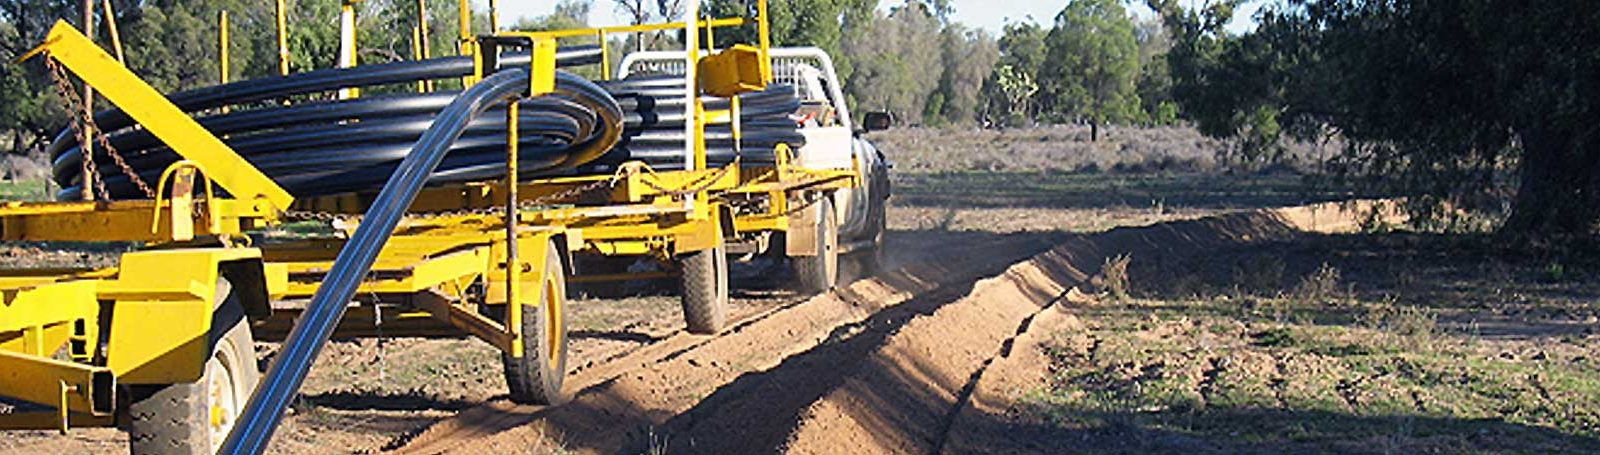 Darling Irrigation Mining Projects